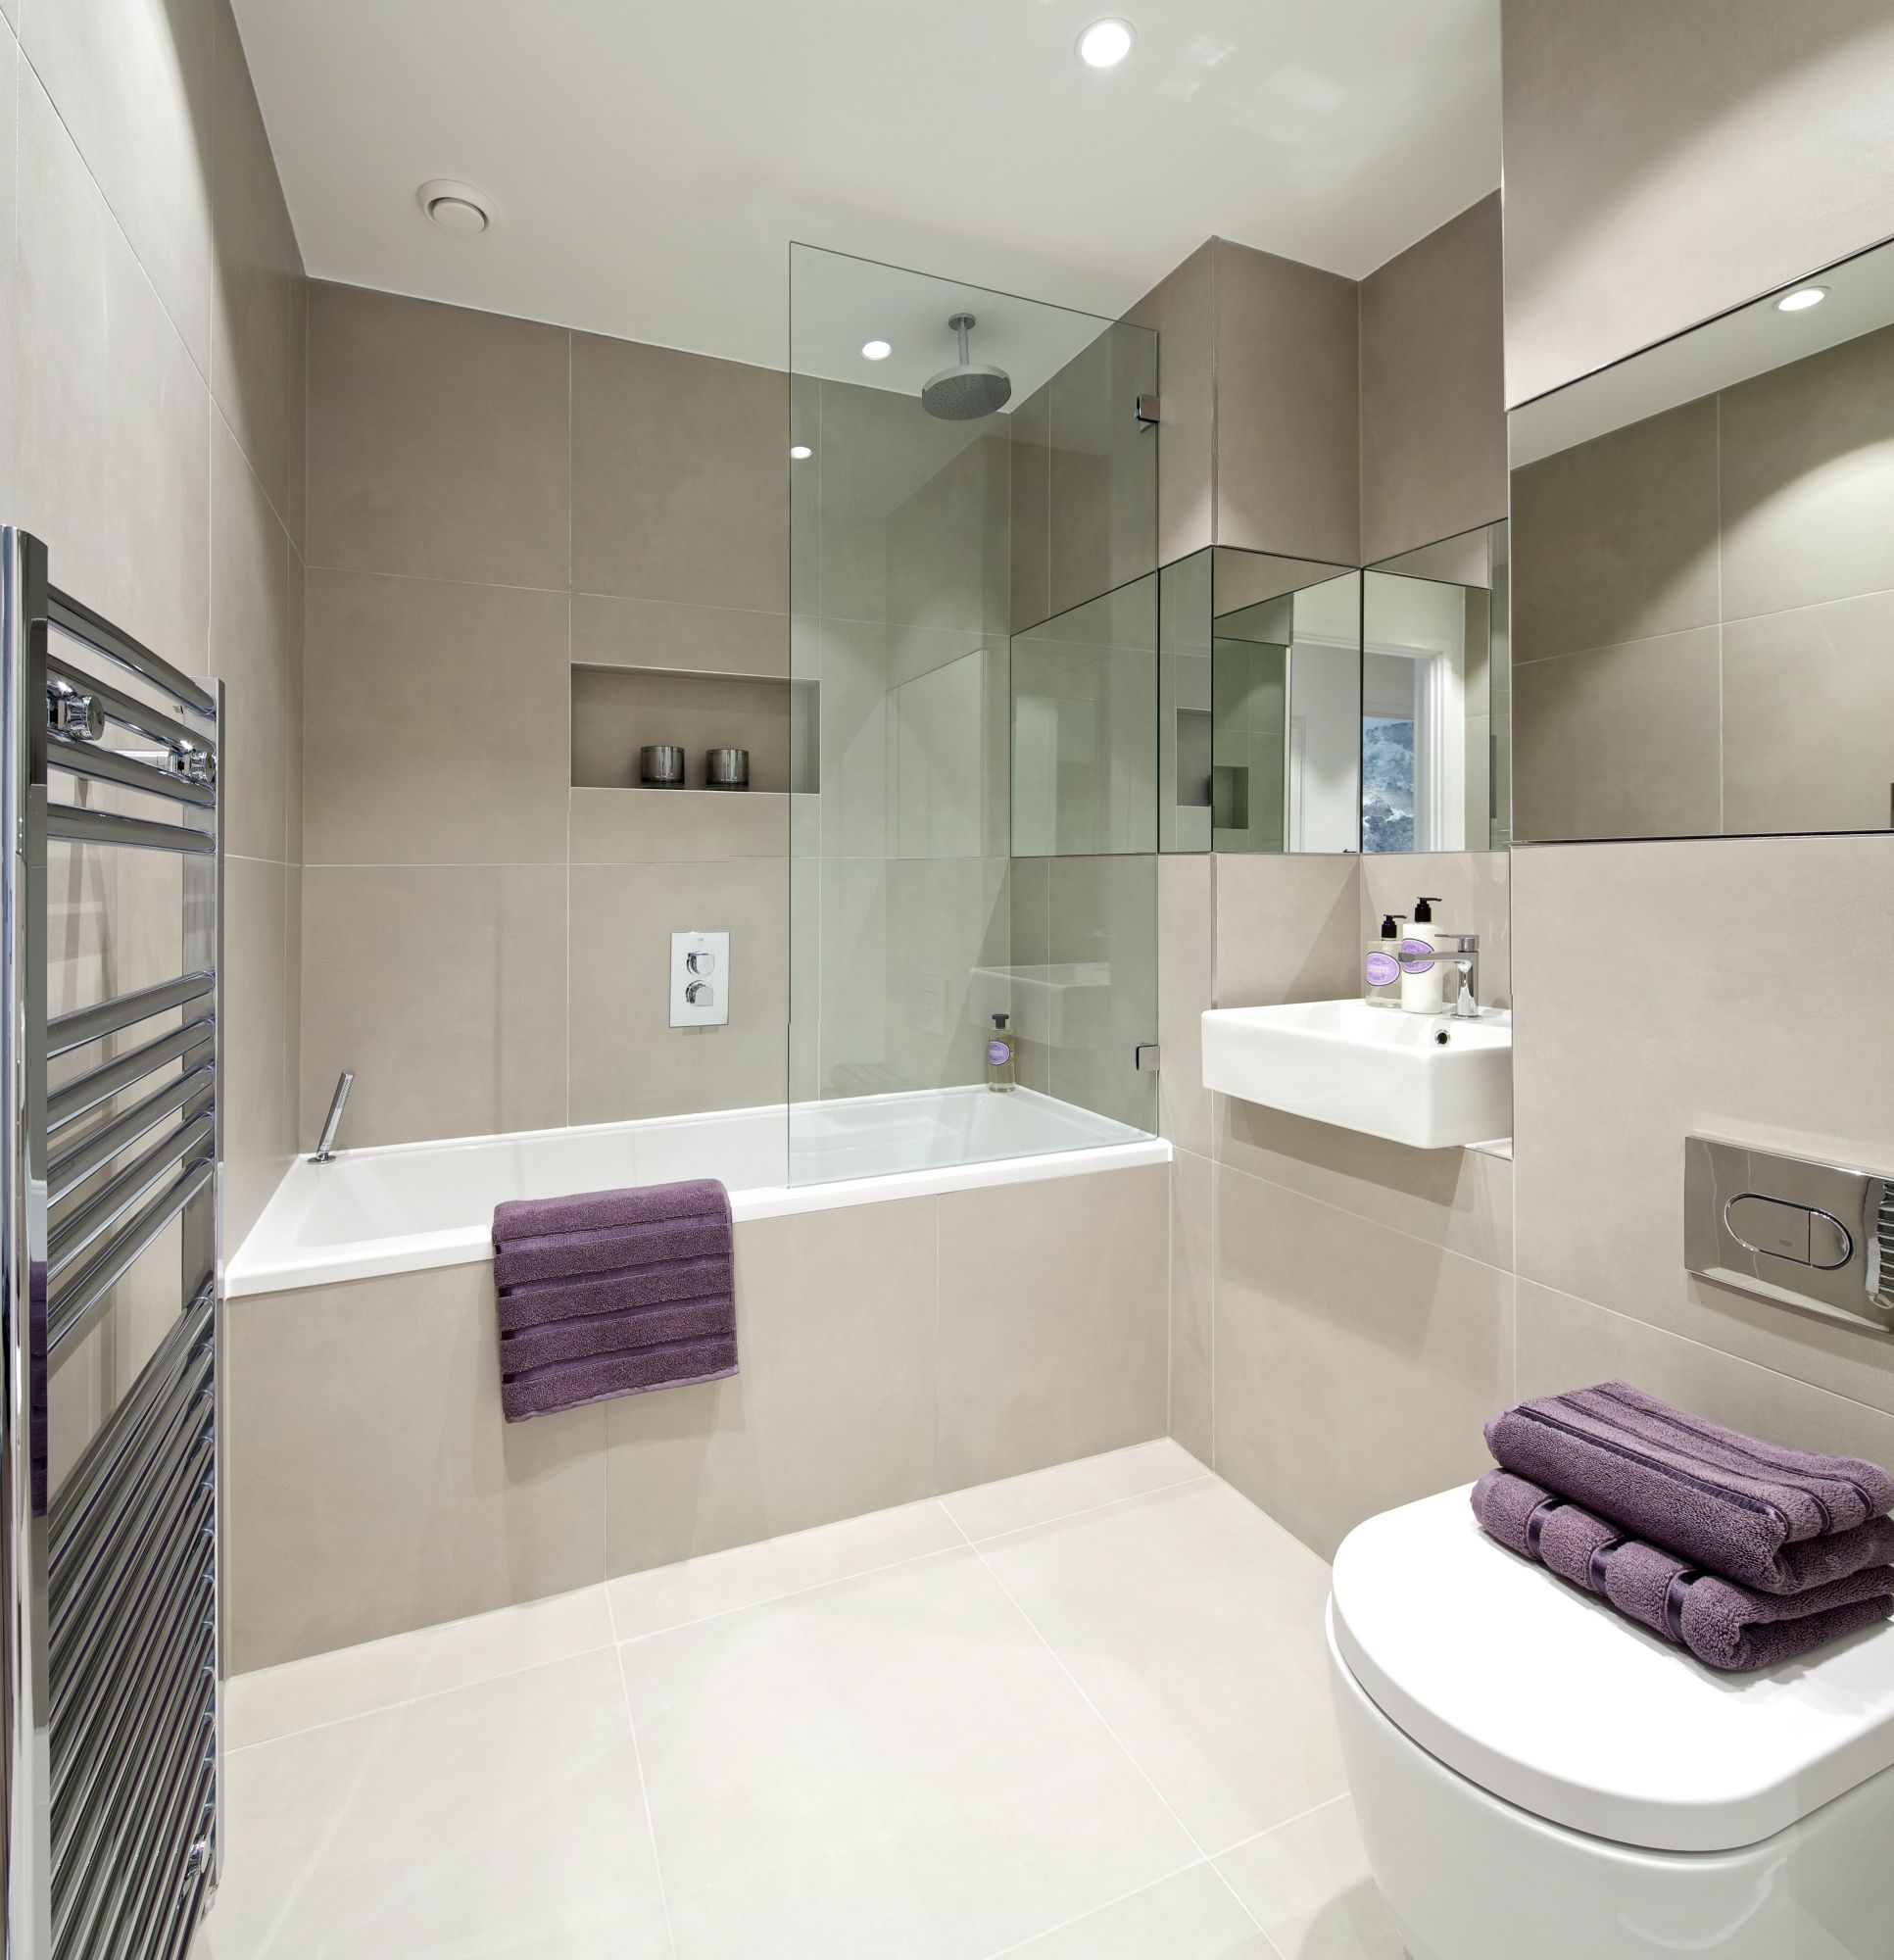 Stunning Home Interiors Bathroom Another Stunning Show Home